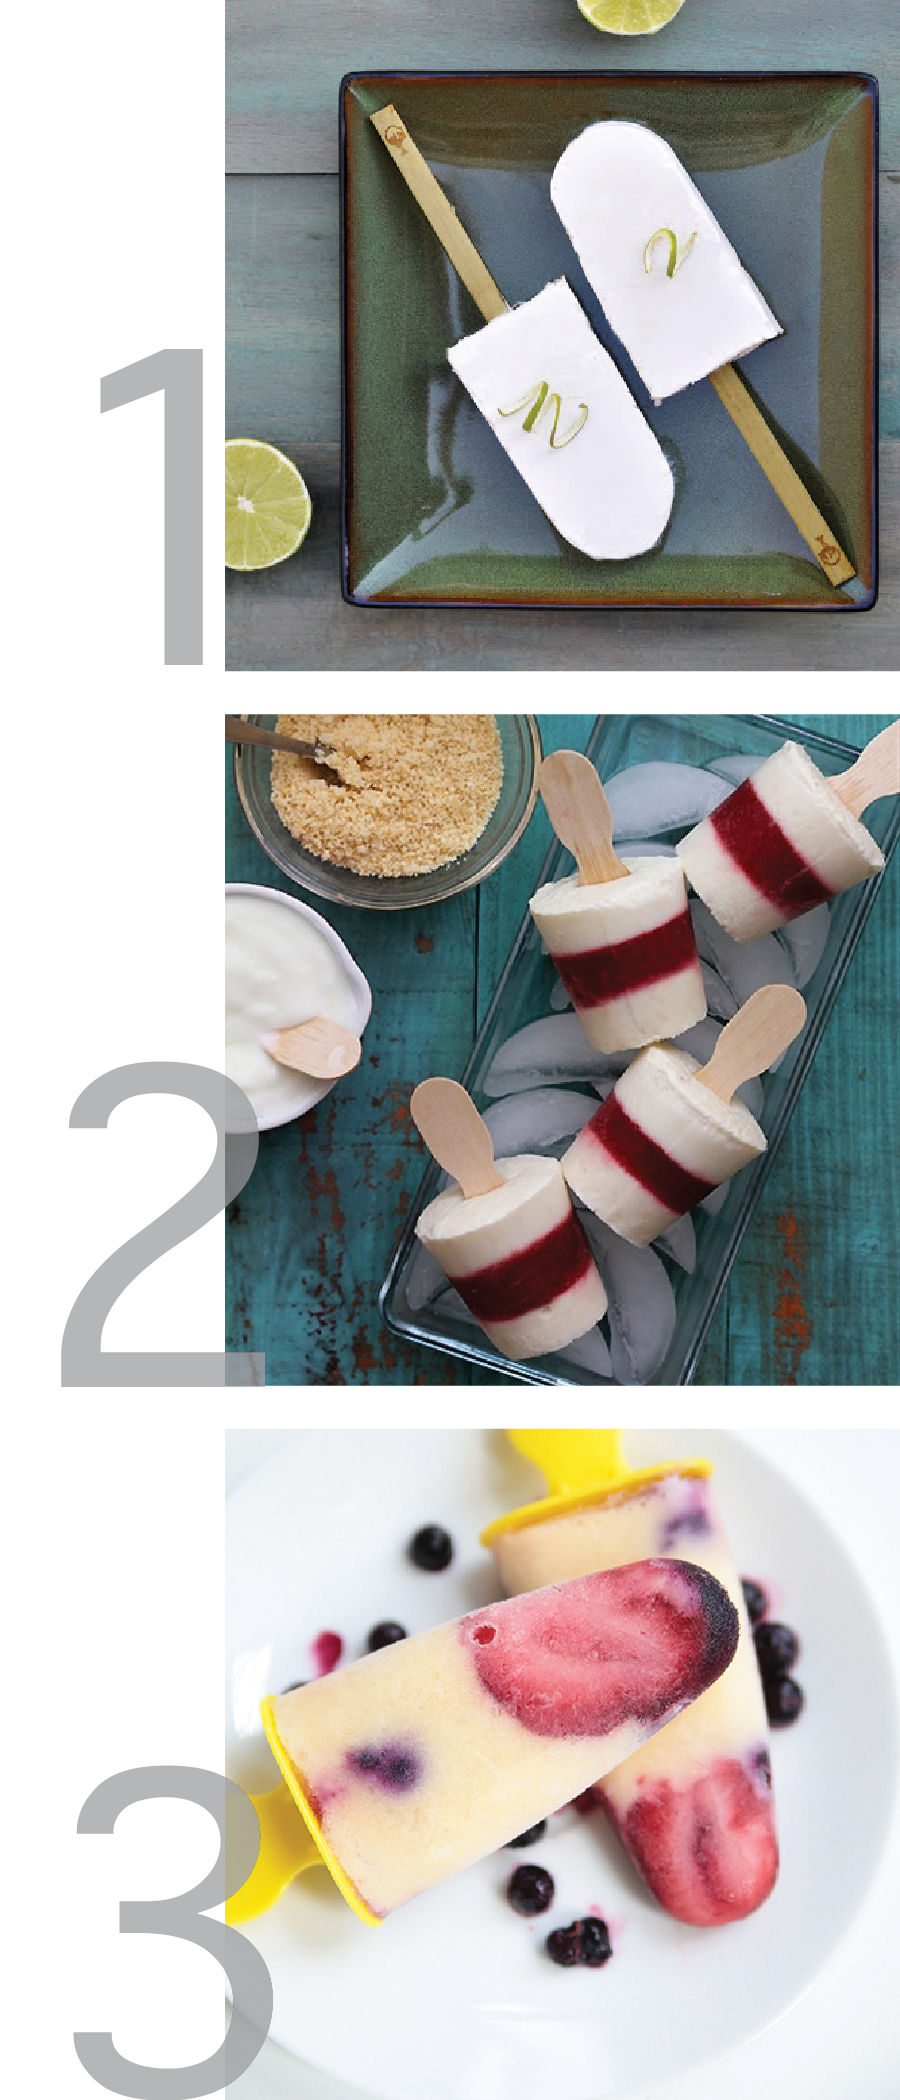 Weekly Pinspiration: Popsicles